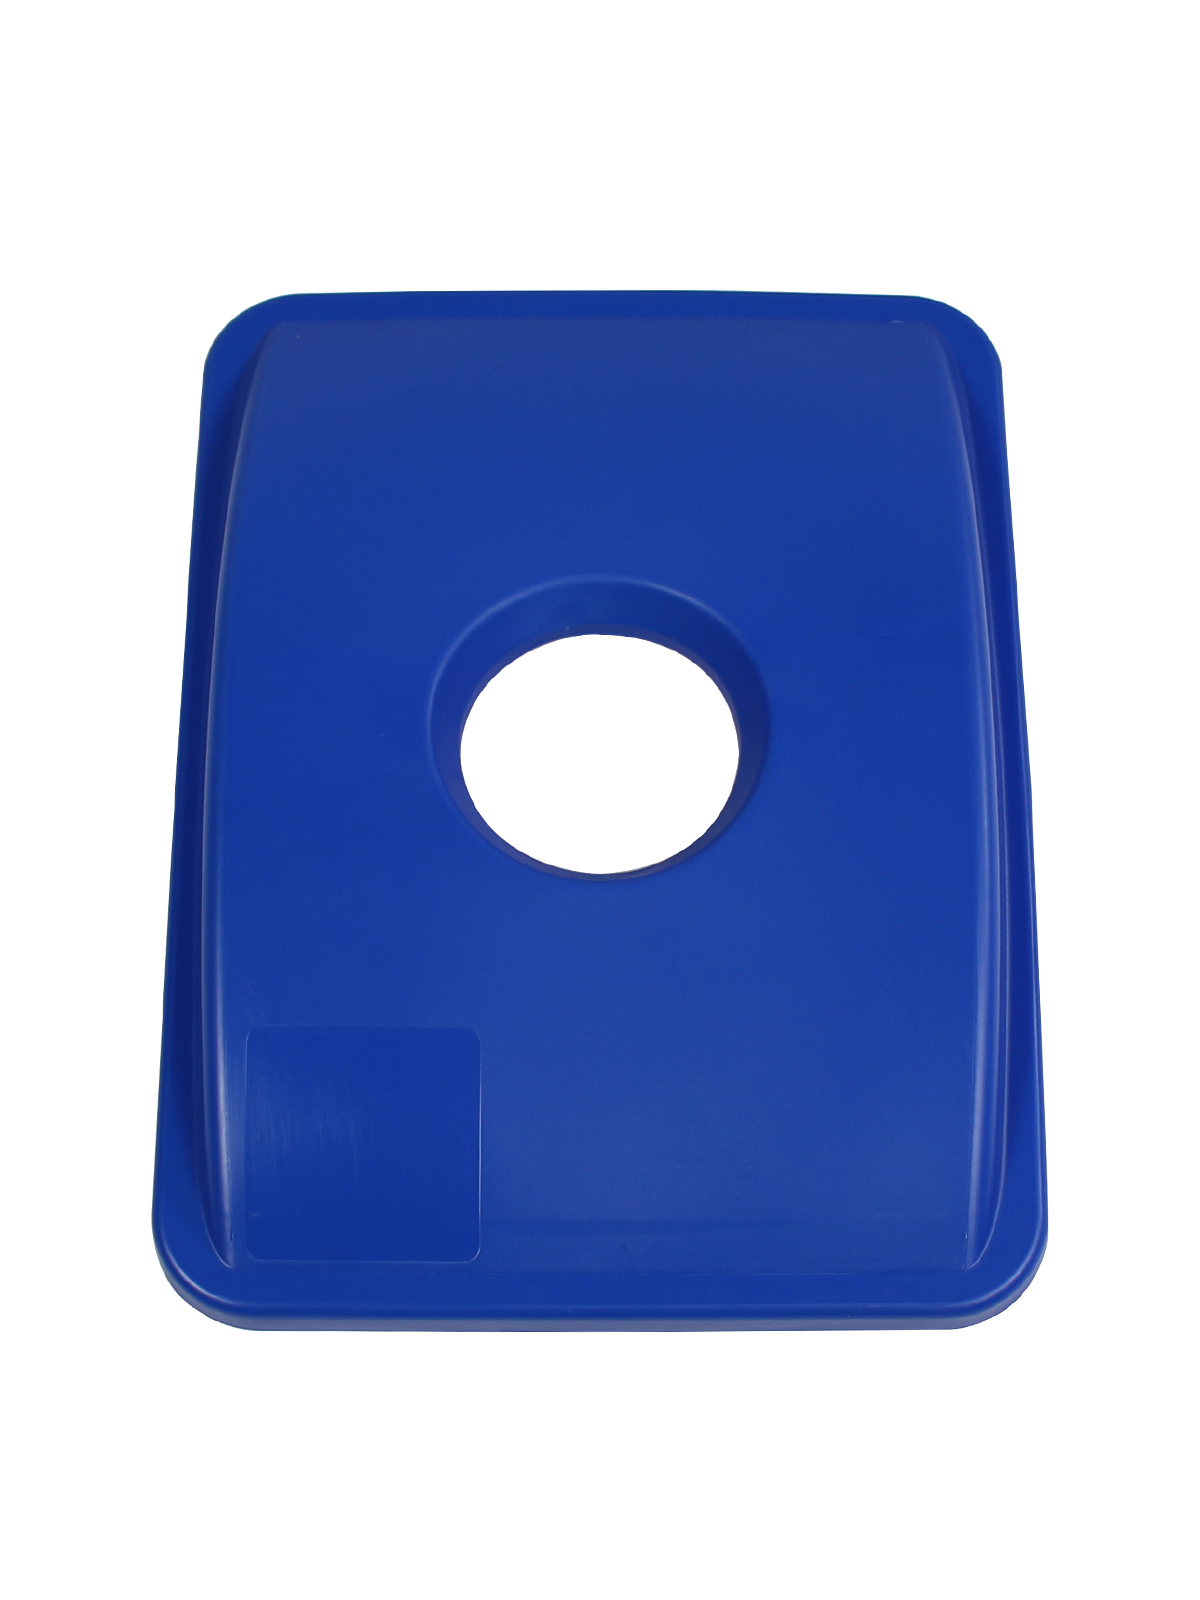 WASTE WATCHER® XL - LID - CIRCLE OPENING - ROYAL BLUE title=